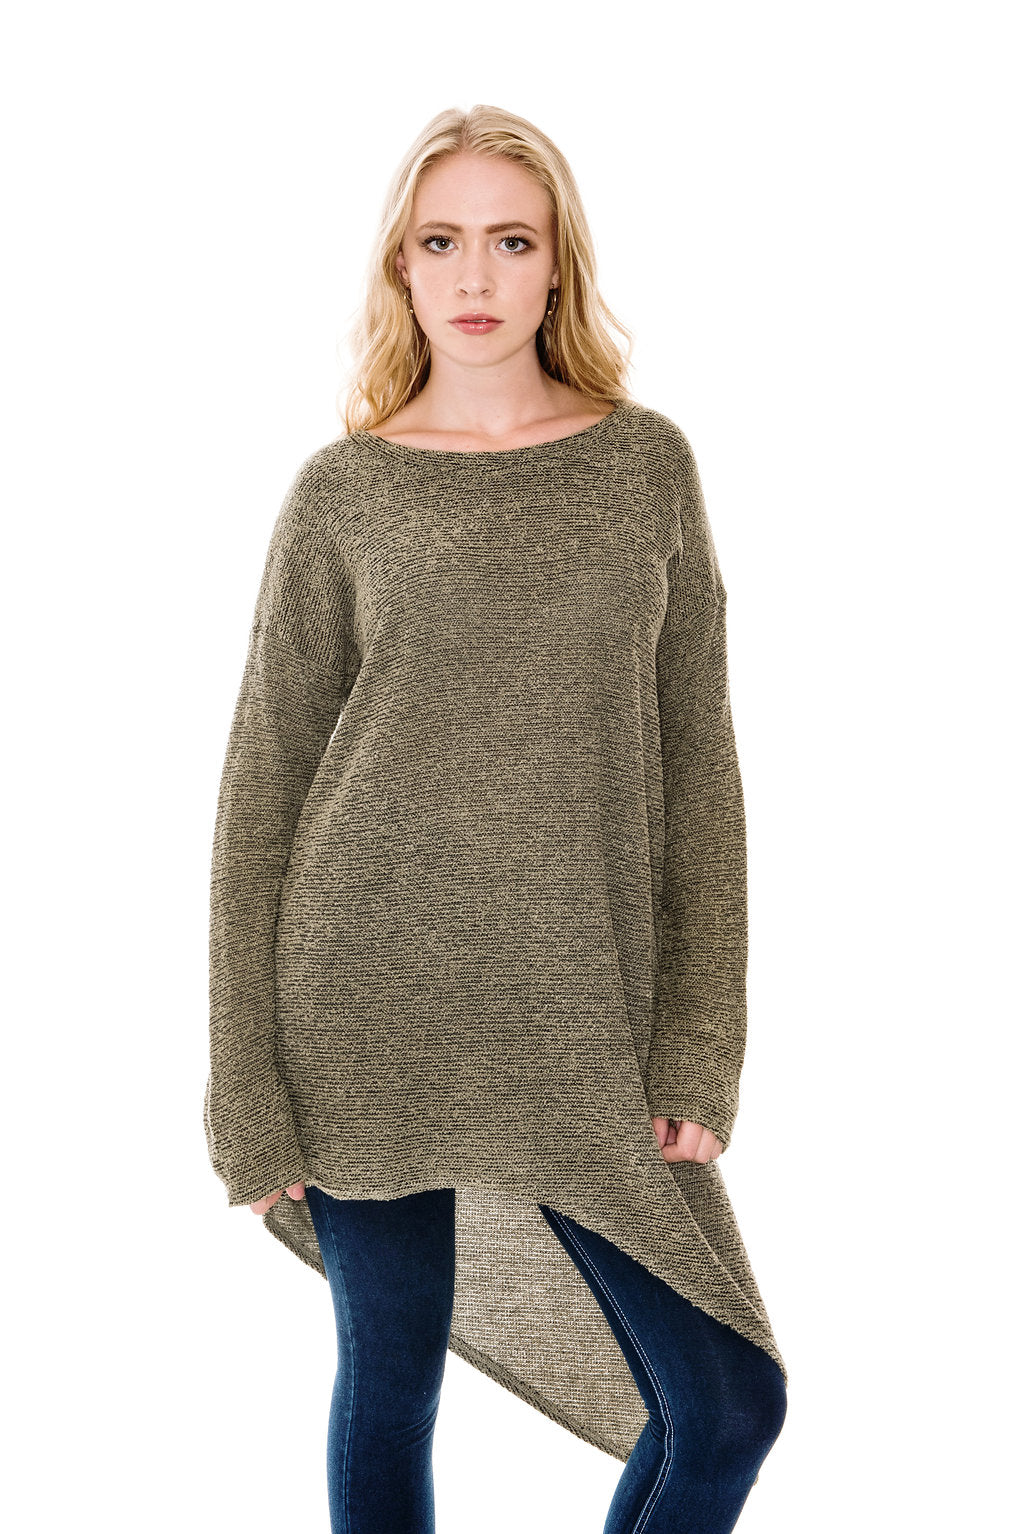 A POSTCARD FROM BRIGHTON KIZZY ASYMMETRIC KNIT TUNIC TOP - OLIVE